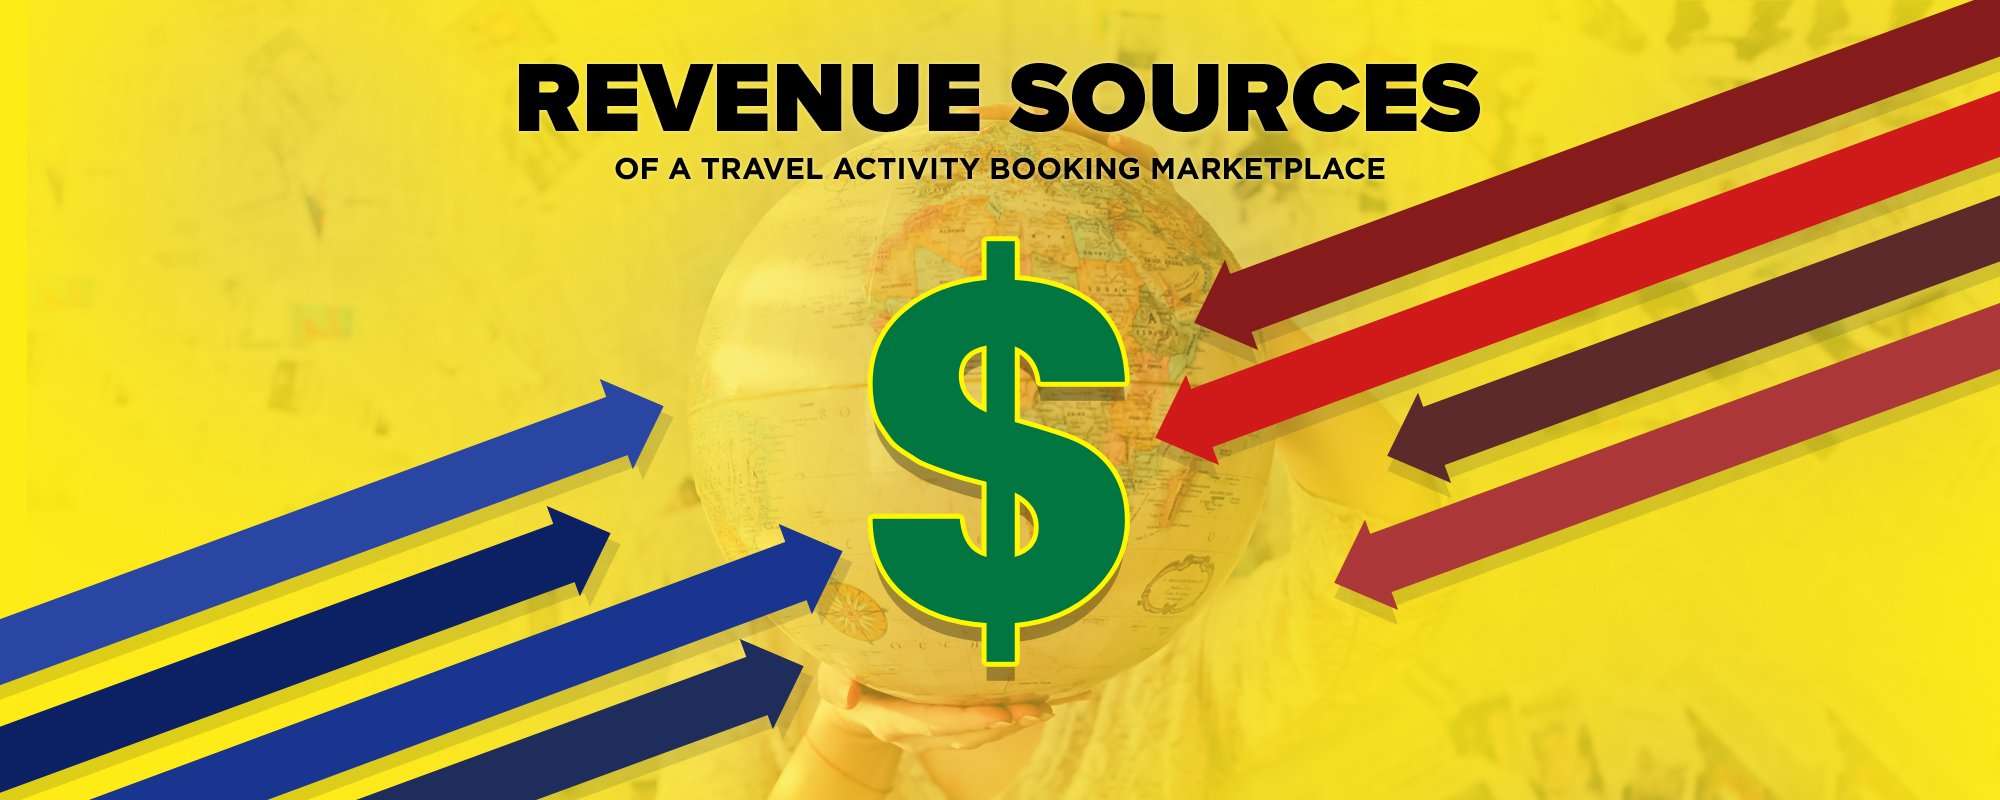 Maximize Earnings of Your Travel Booking Marketplace with These Proven Revenue Sources